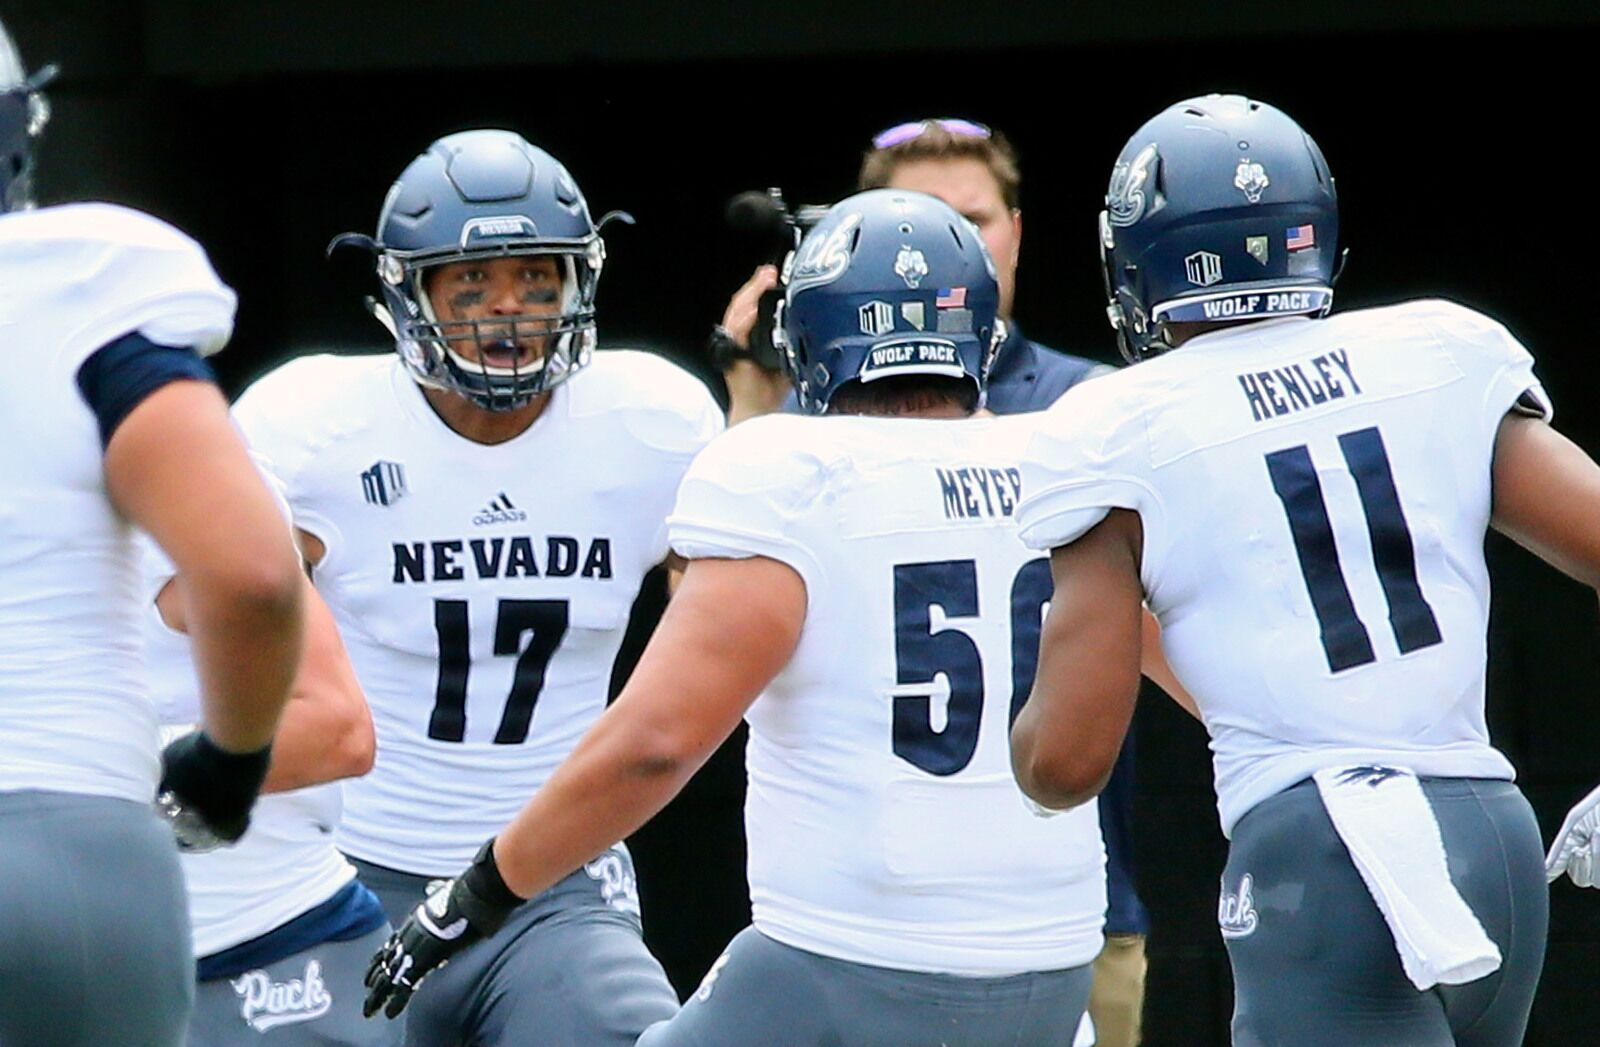 promo code 9a0f8 a4043 Nevada Football: Wolf Pack beat Purdue on wild 56-yard field ...